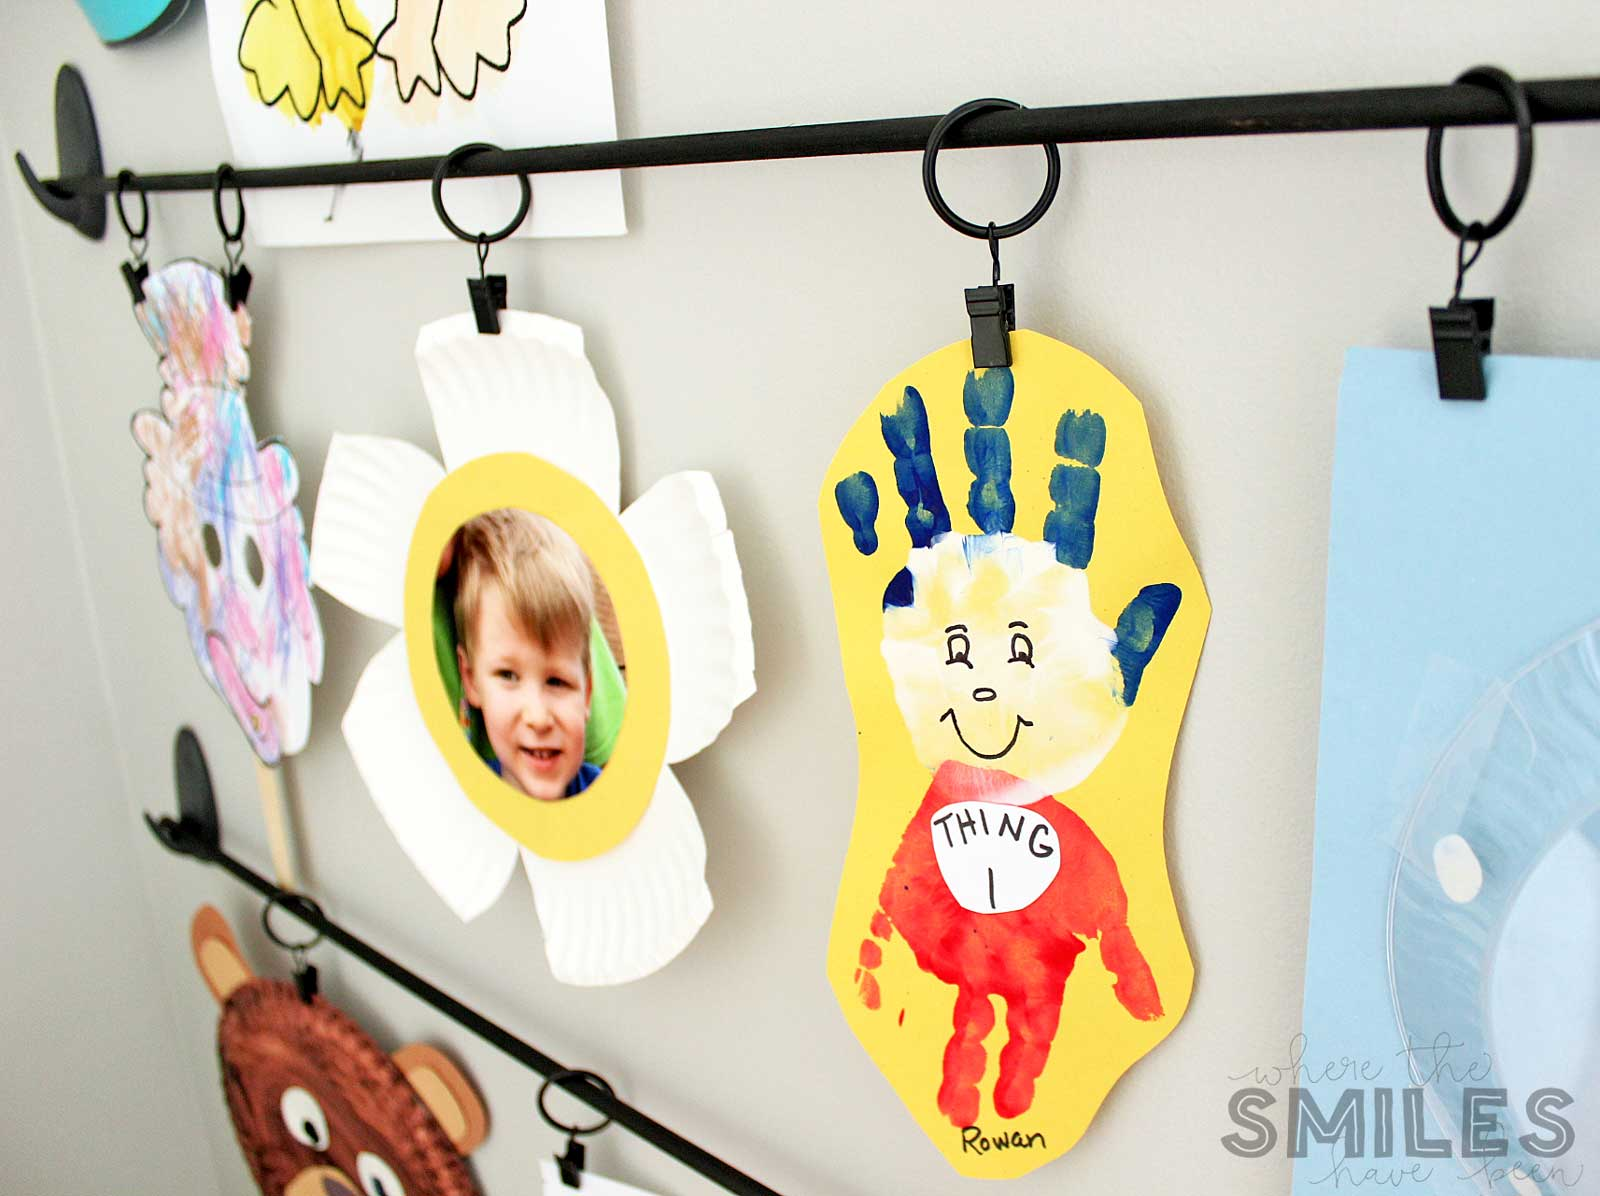 Easy DIY Kids Art Display with kid's artwork hanging from curtain clips.